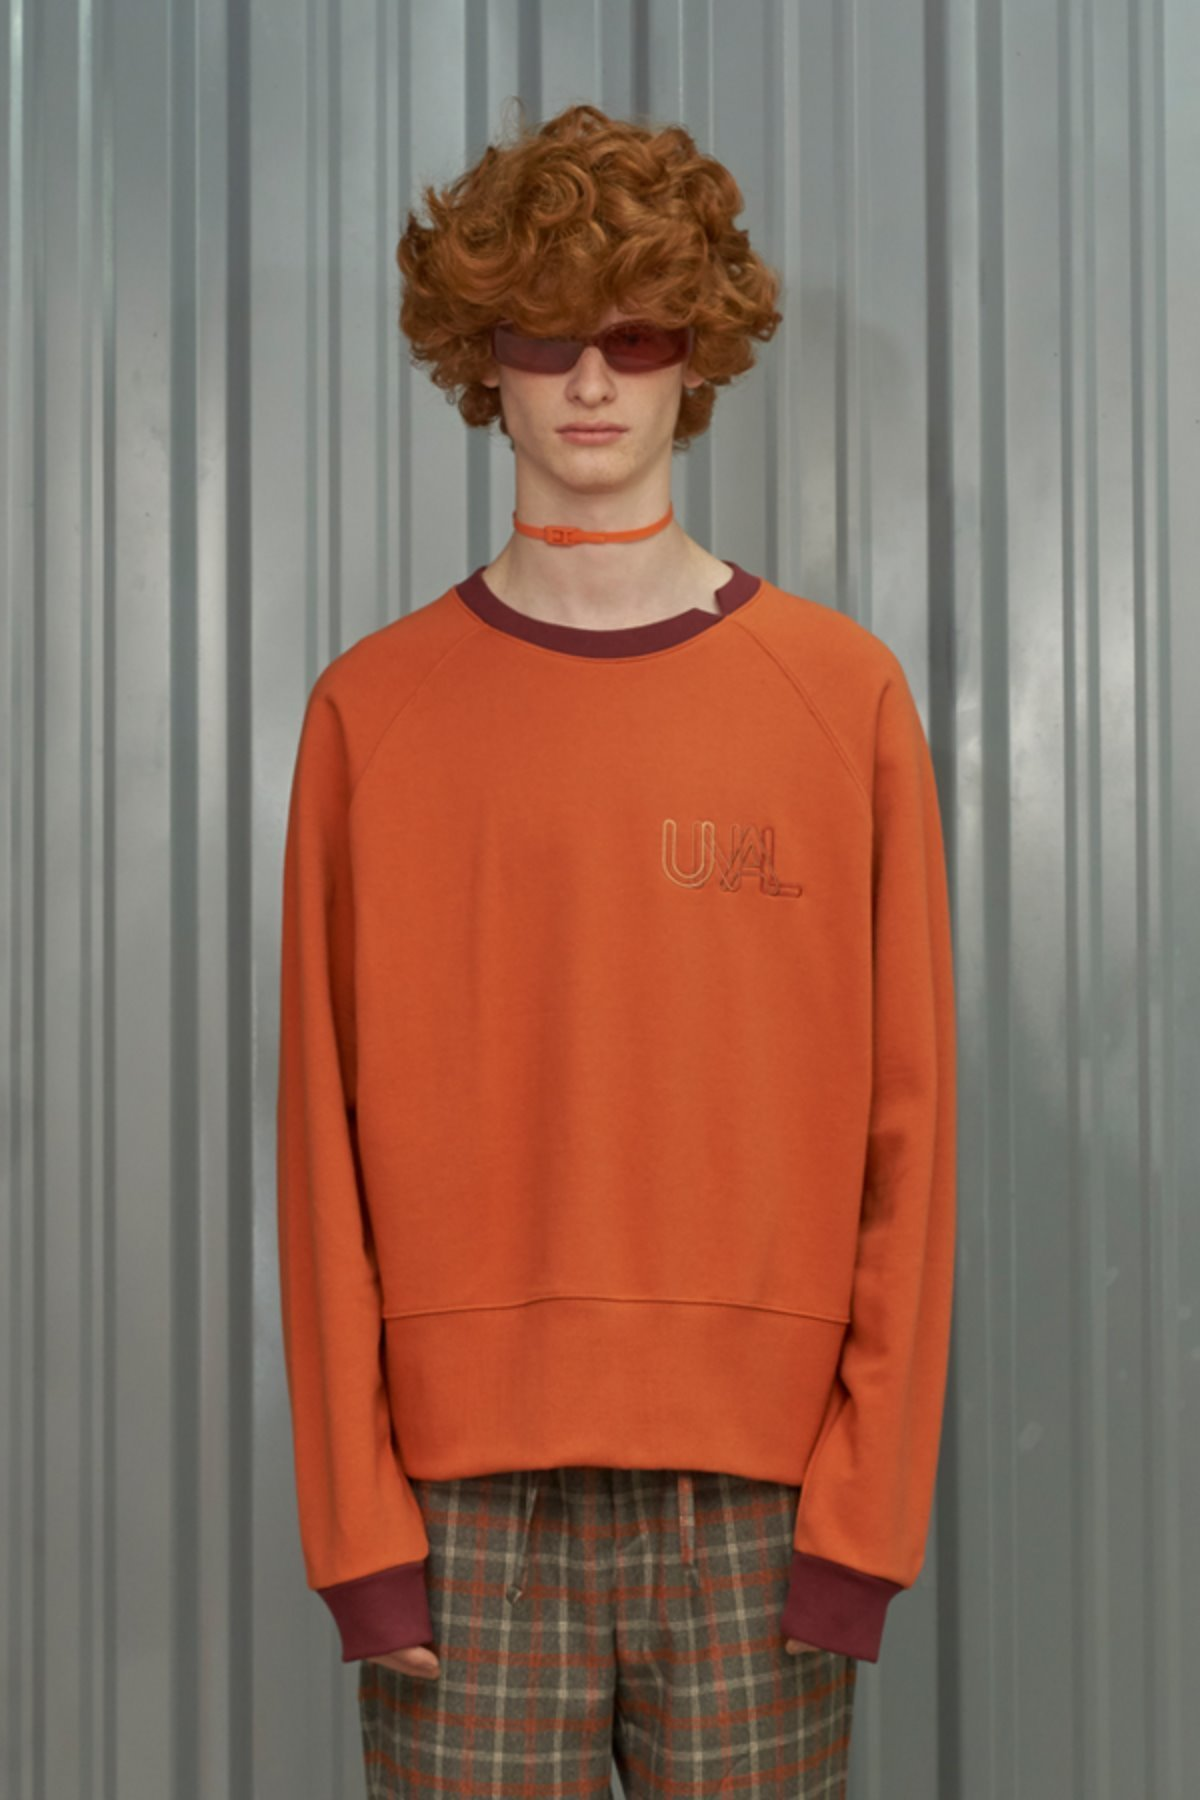 COLOR BLOCK SWEATSHIRT / ORANGE